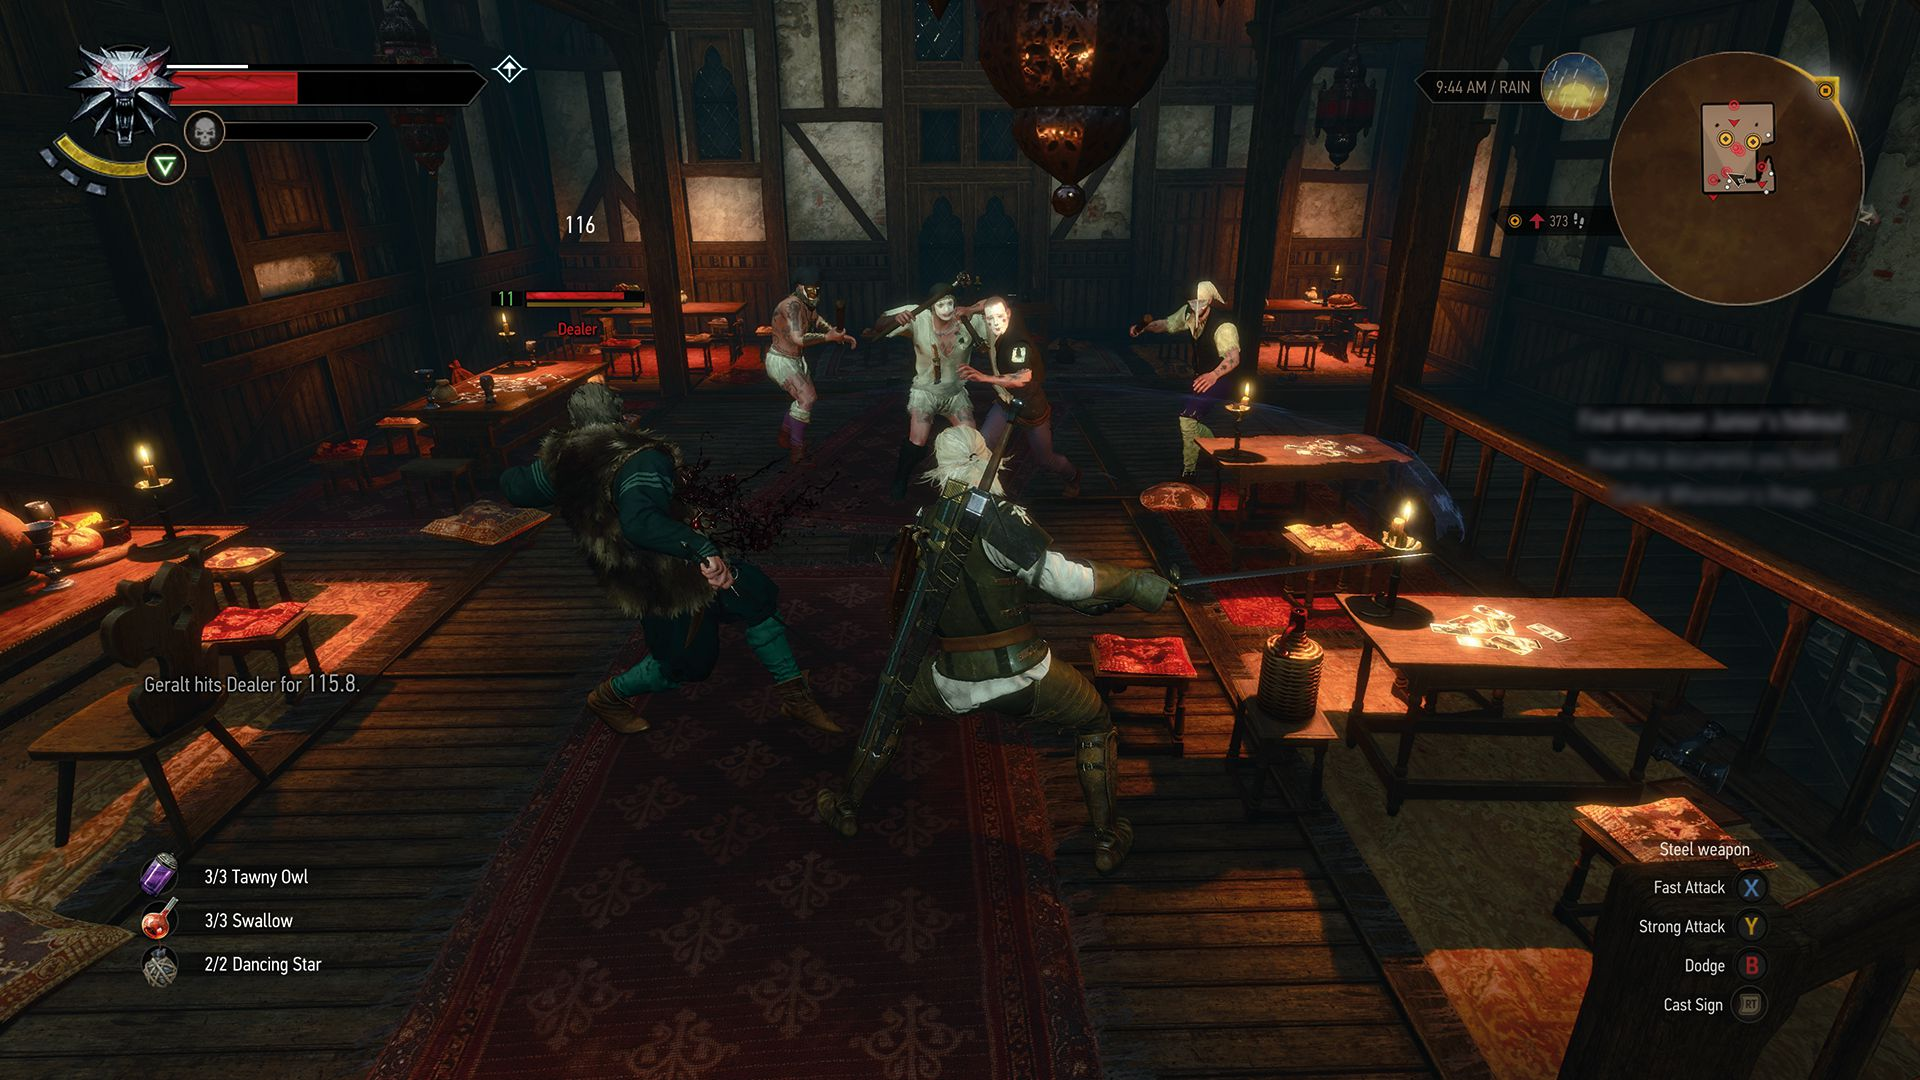 the_witcher_3_wild_hunt_clowns_i_hate_clowns_1430900893